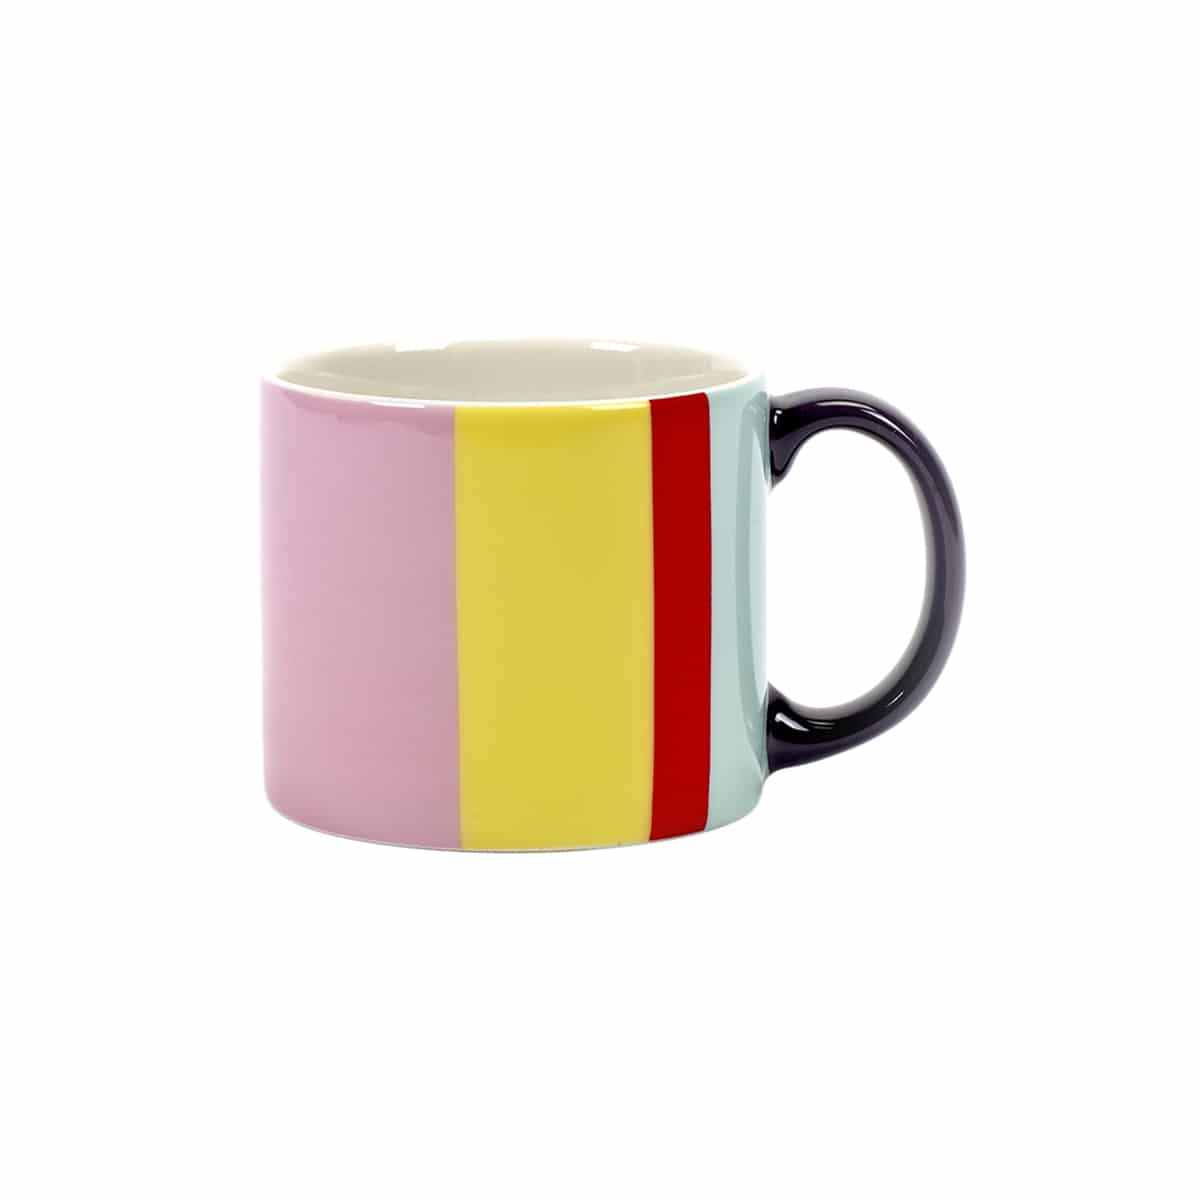 mug my art mug andy jansen+co rose jaune zeeloft